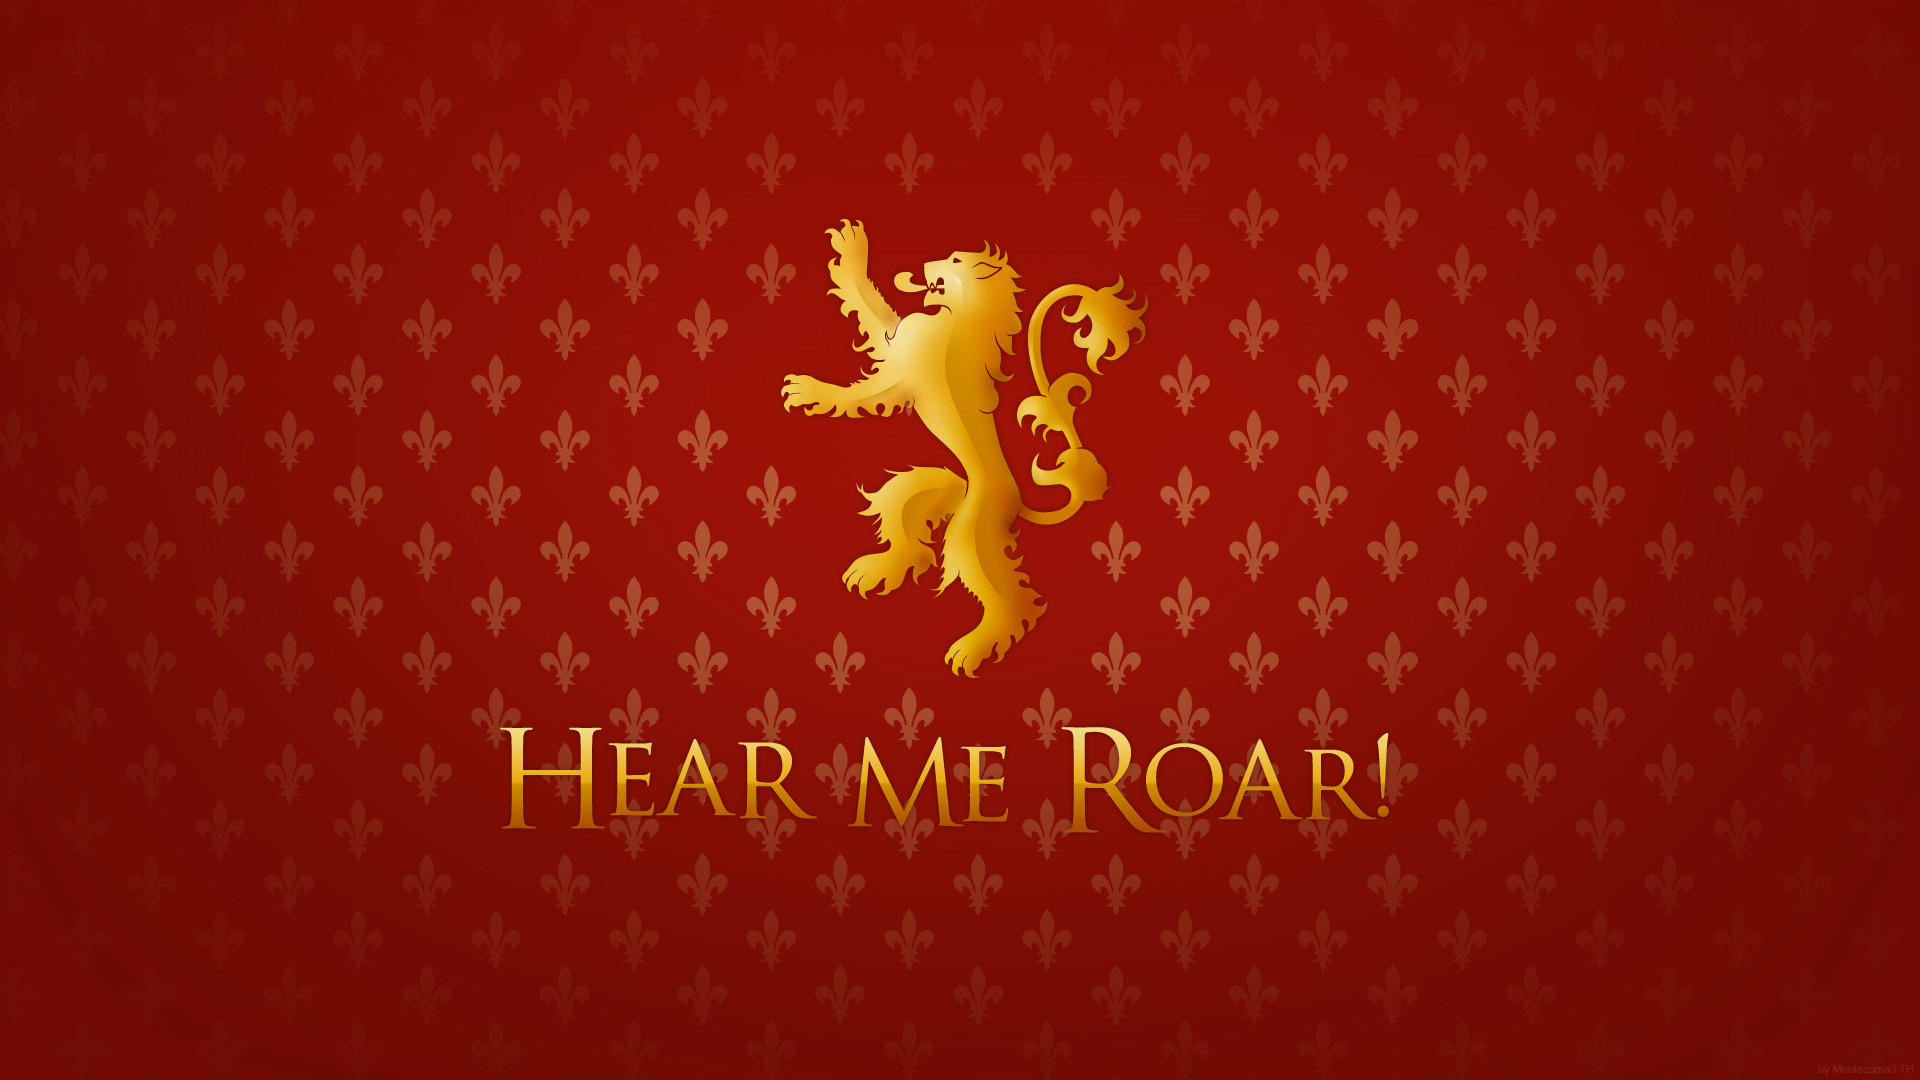 Game of Thrones A Song Of Ice And Fire lions TV series House Lannister /  Wallpaper